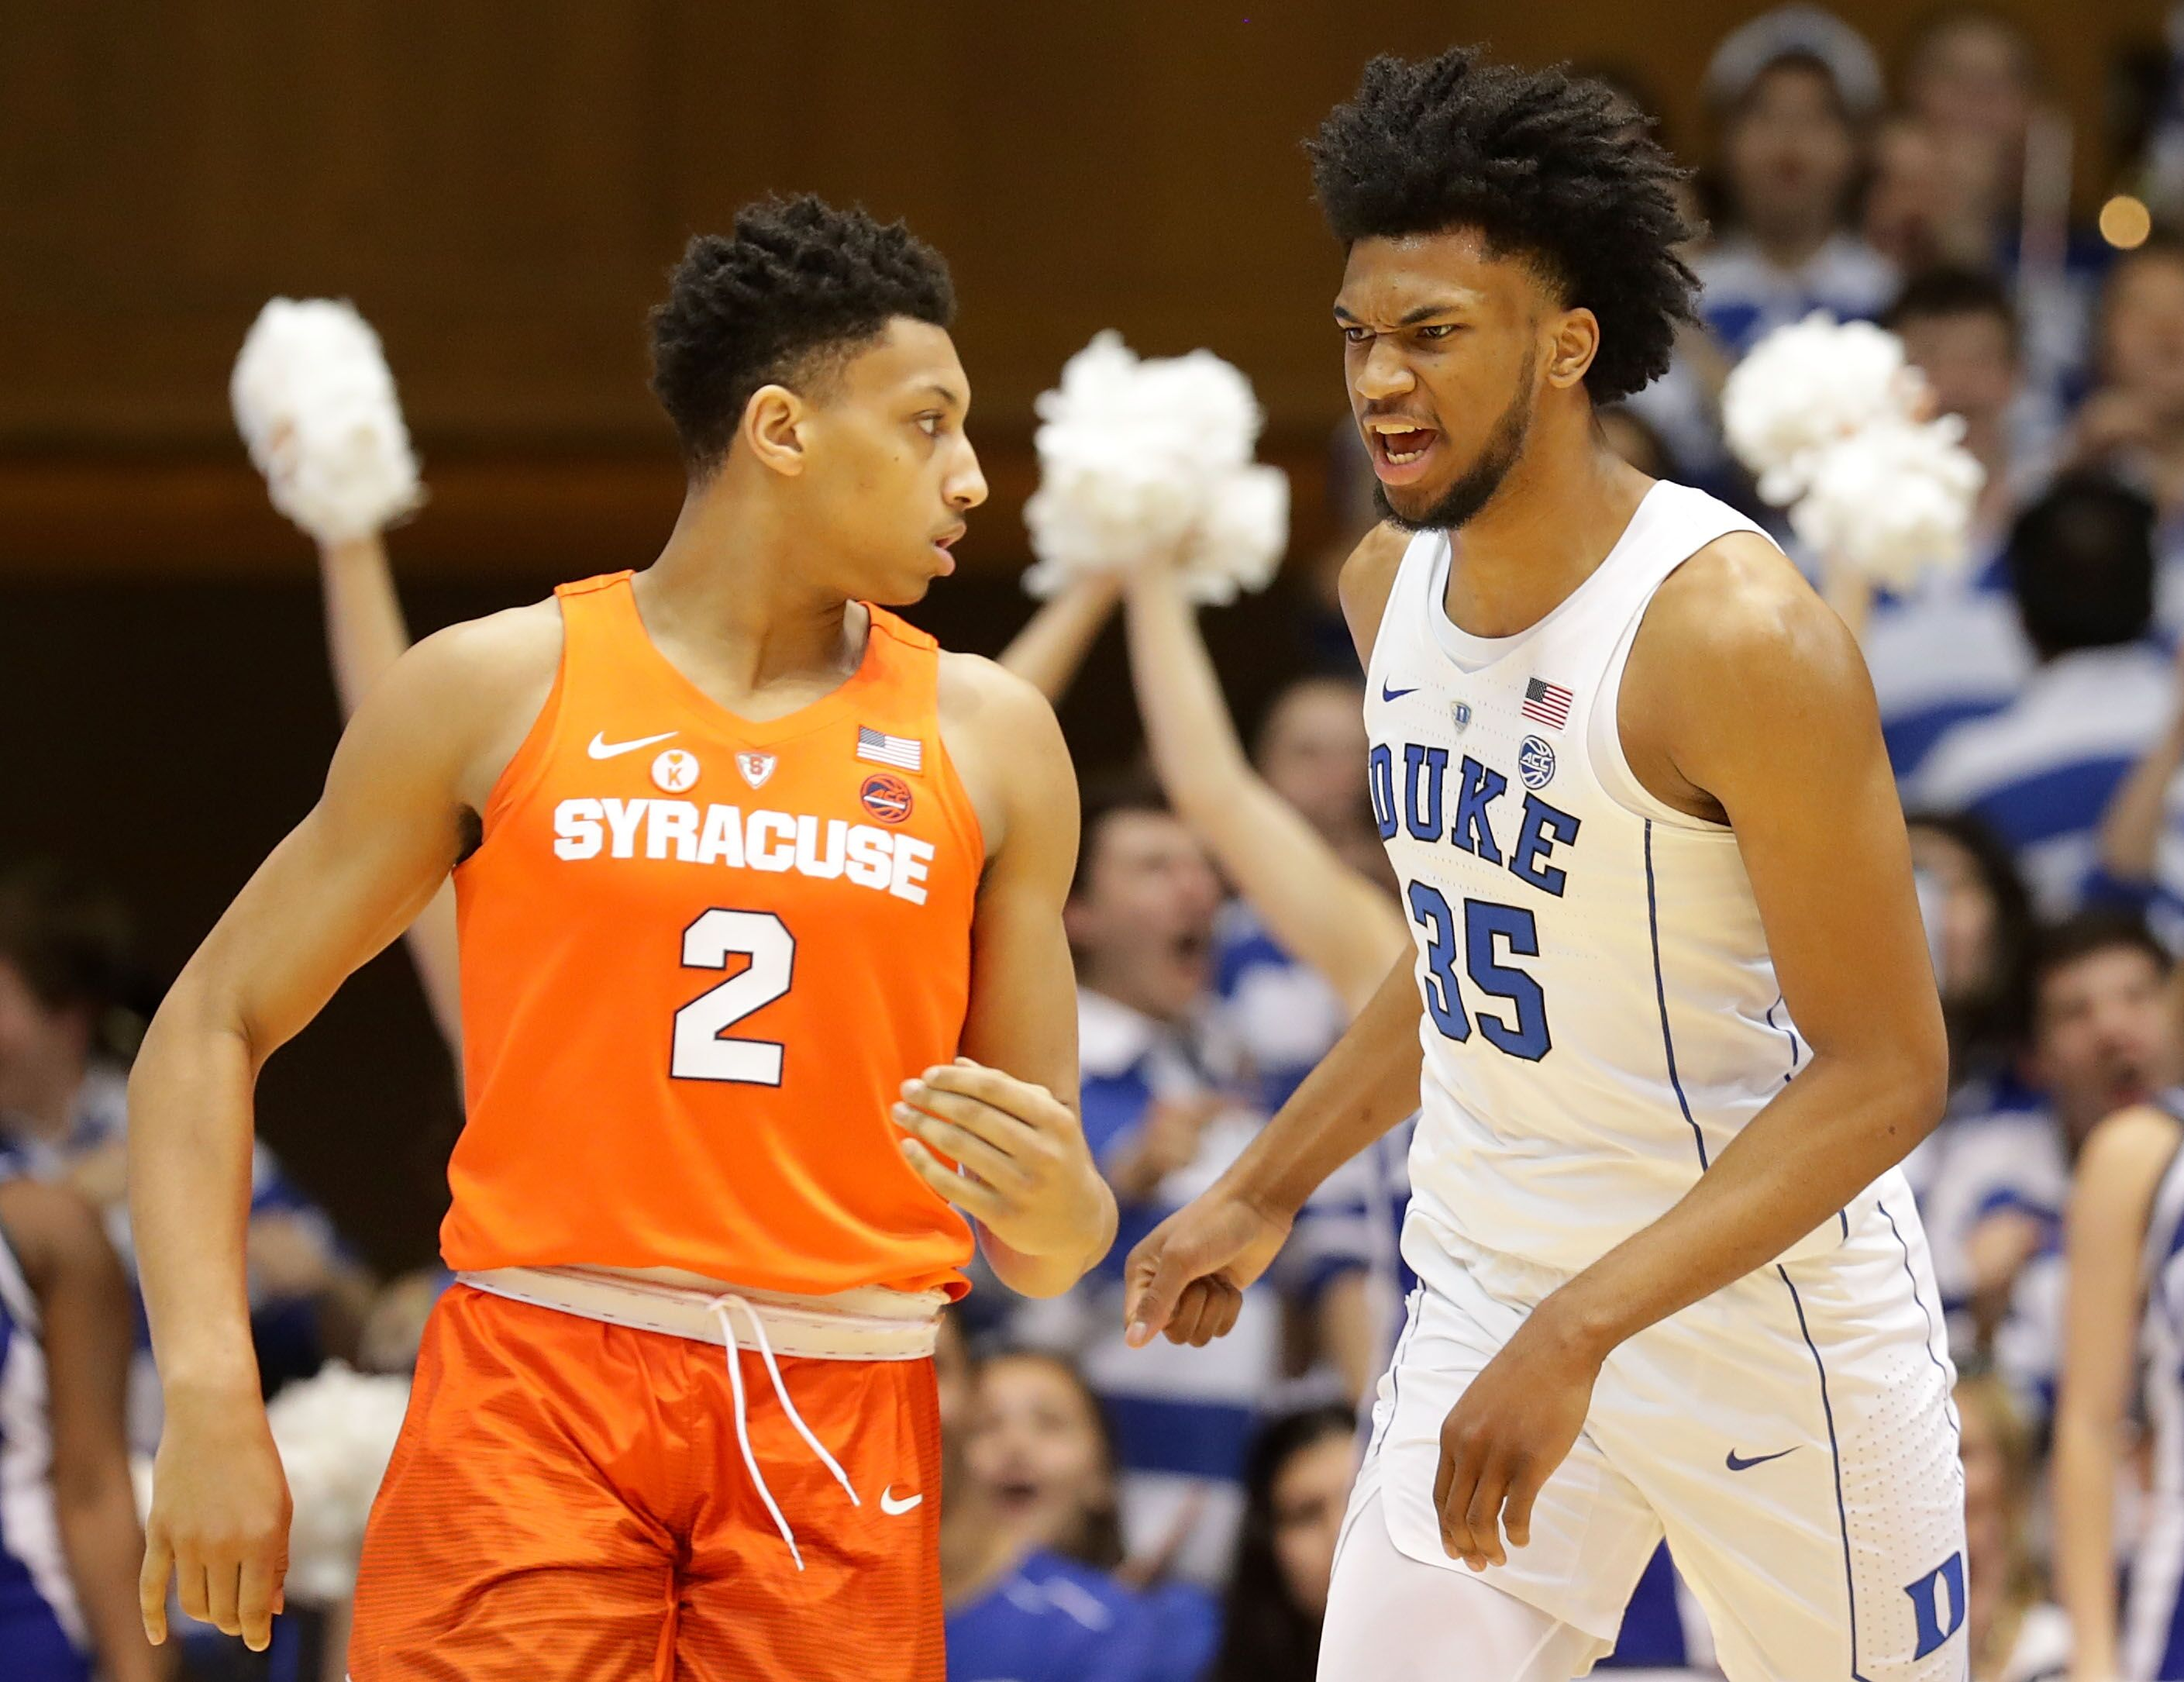 Syracuse Basketball In The Sweet 16 Versus Duke, By The